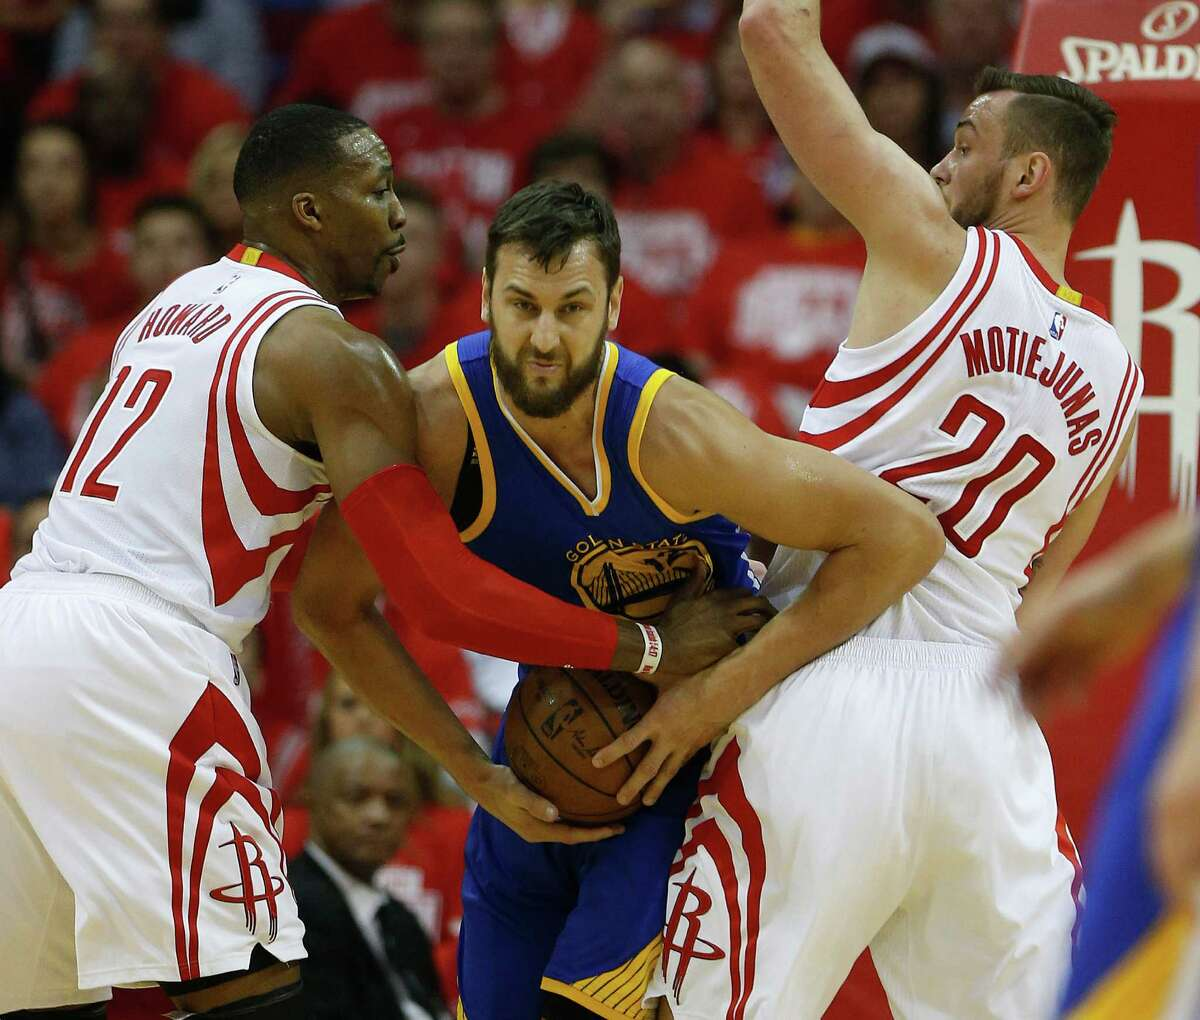 Dwight Howard, left, and Donatas Motiejunas had Warriors center Andrew Bogut sandwiched in the playoffs. But it doesn't look likely Howard will remain a Rockets teammate with Motiejunas next season.